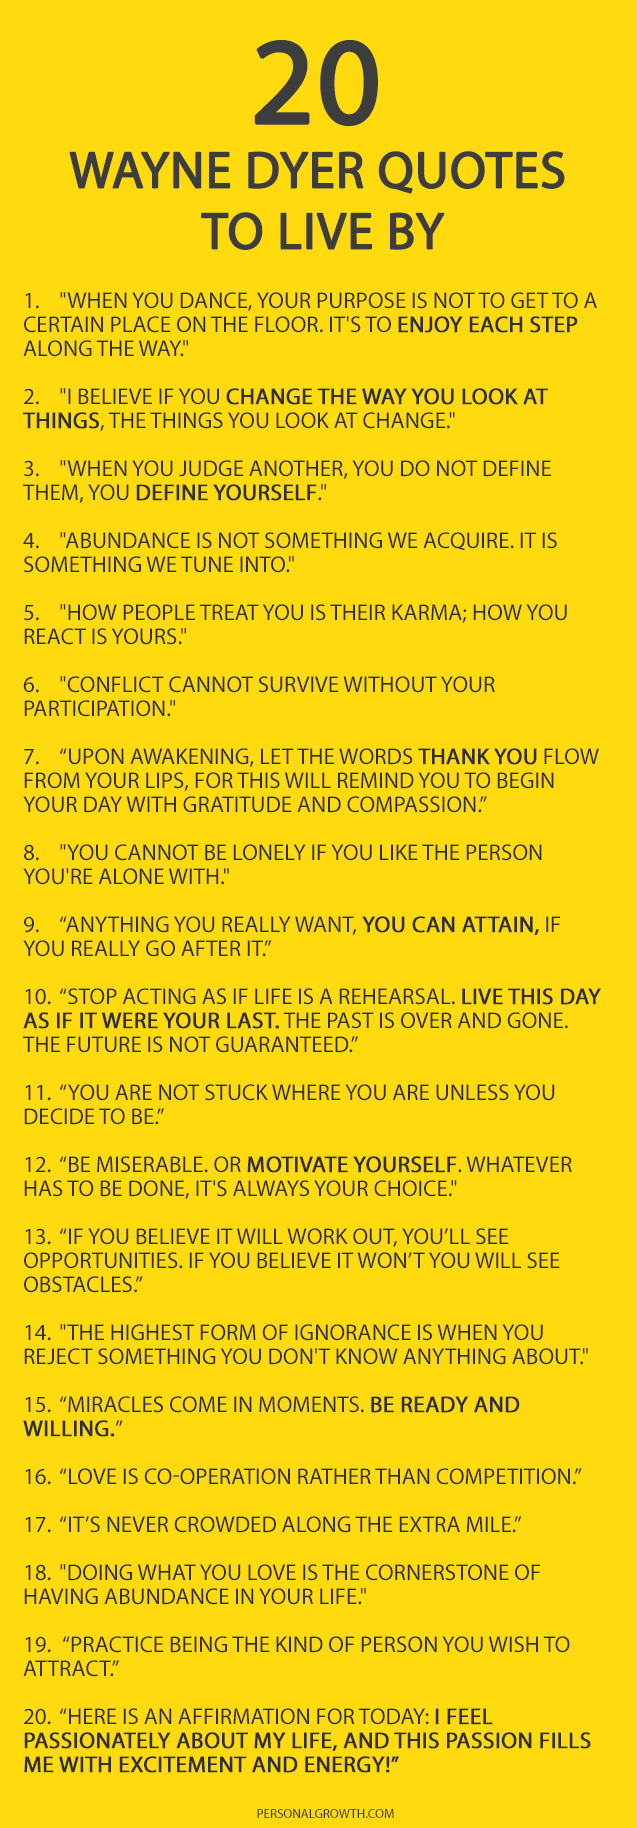 20 Things Wayne Dyer Wanted You To Know